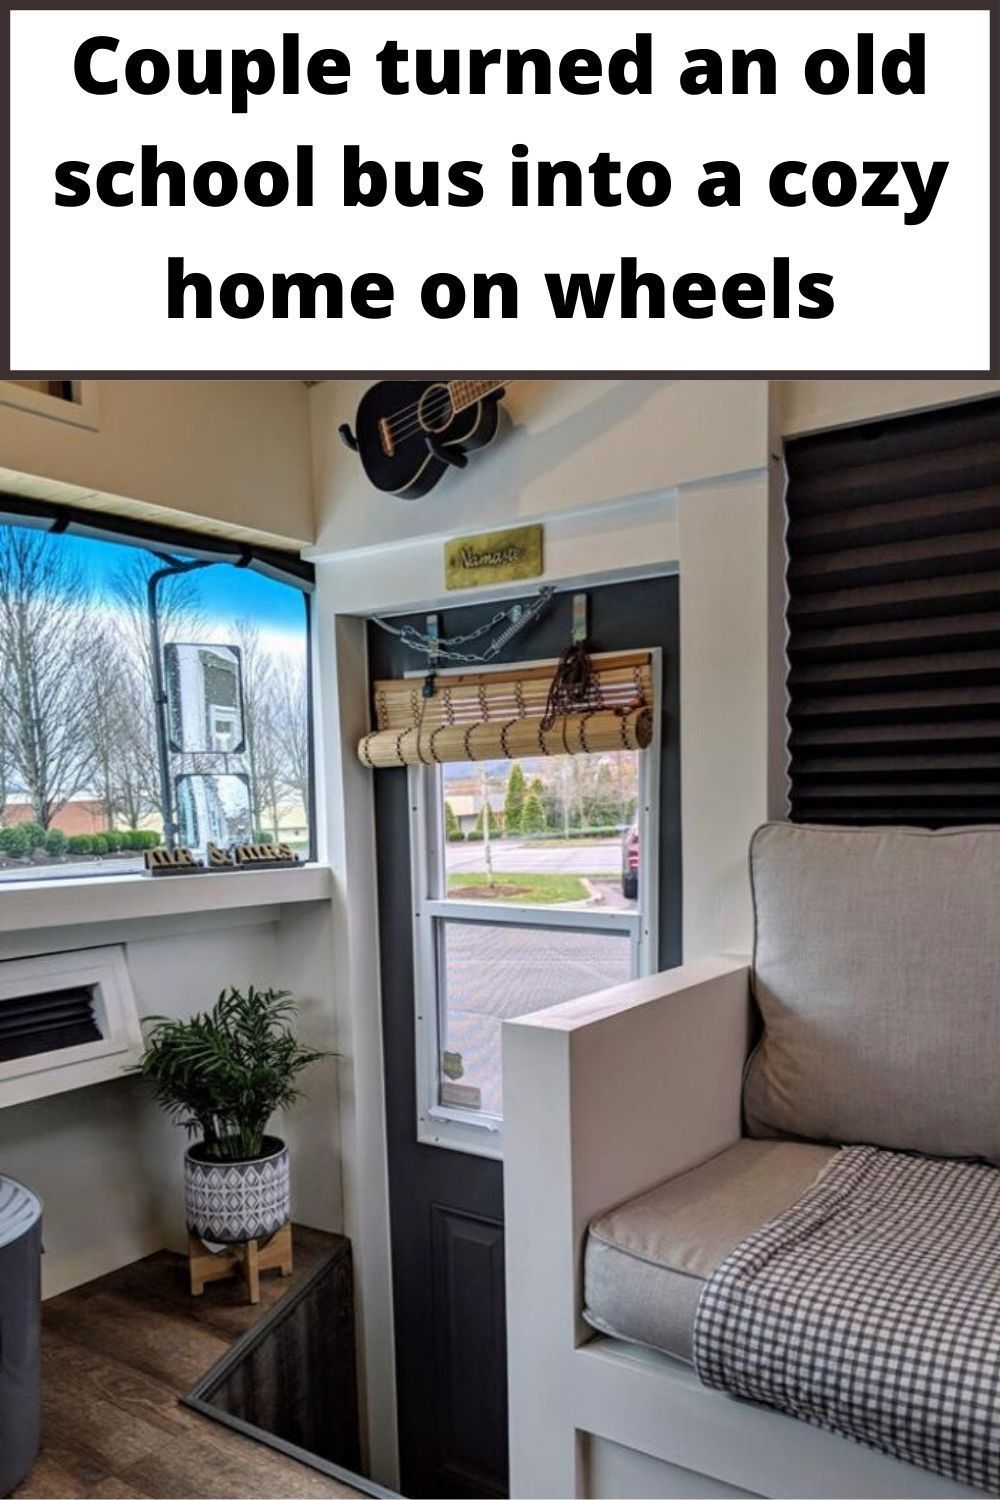 Couple turned an old school bus into a cozy home on wheels